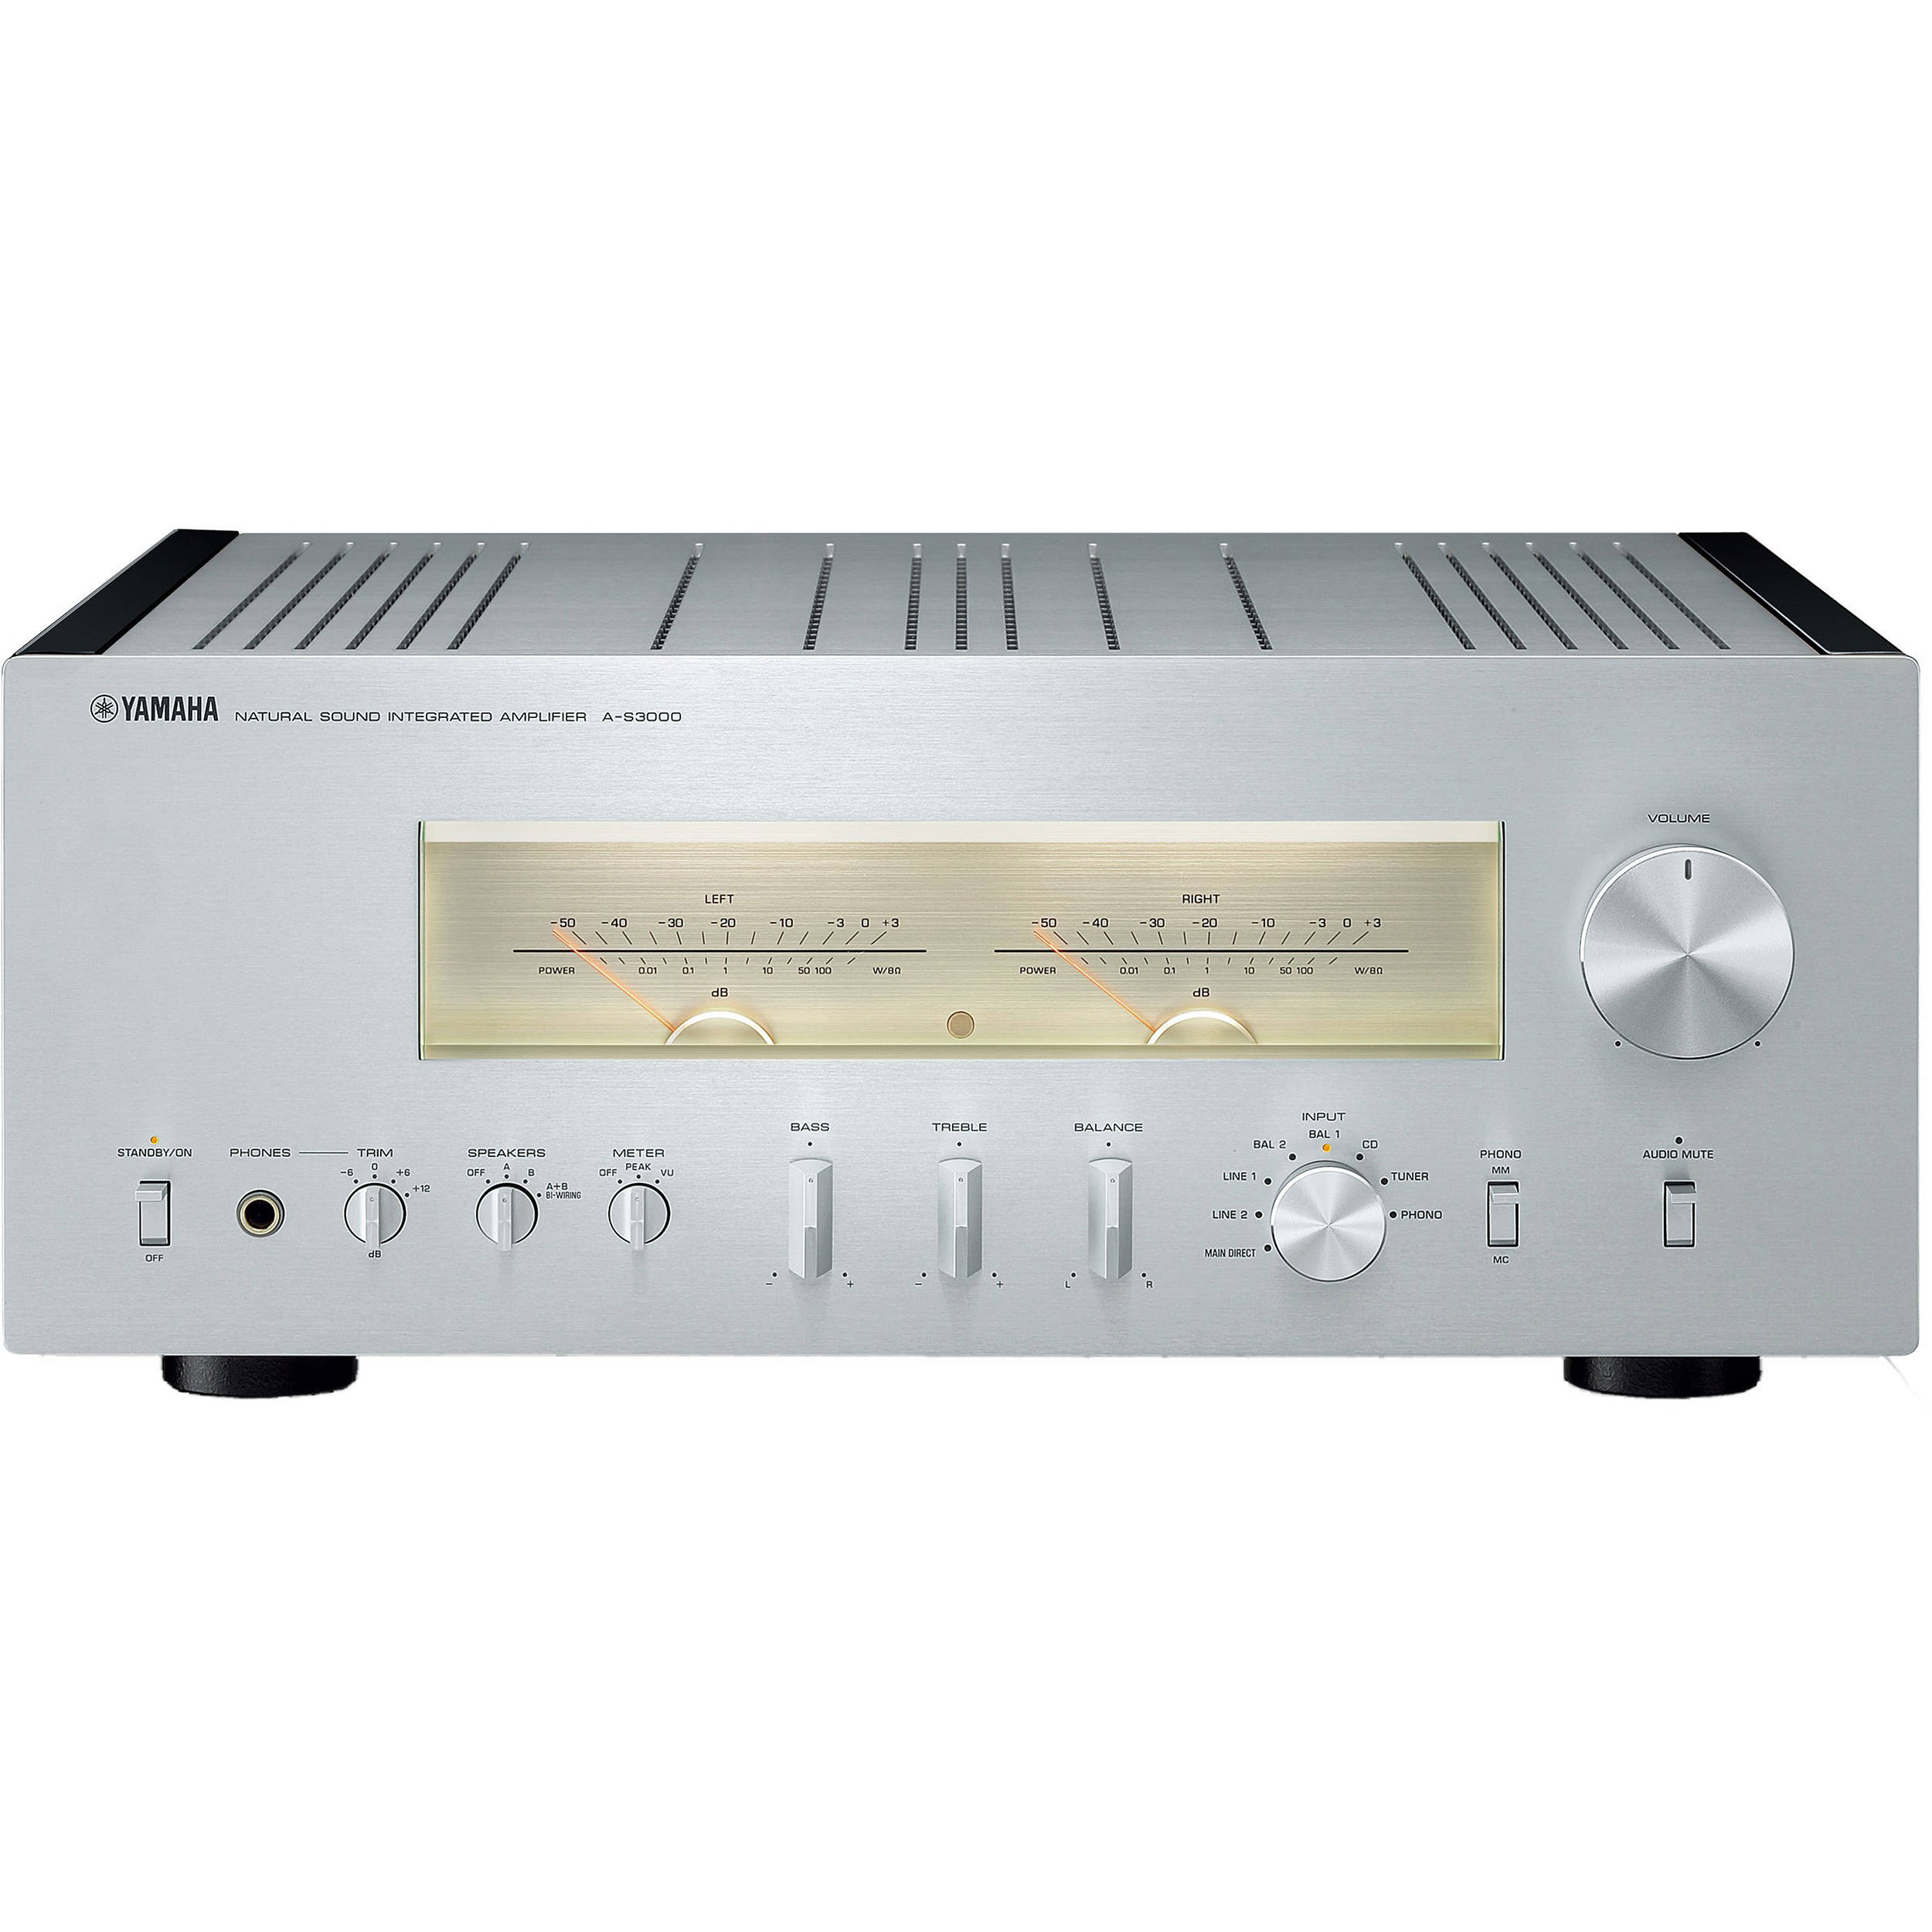 Yamaha A S3000 Integrated Amplifier Silver S3000sl Bh Photo Lowpower With Digital Volume Control Amp Circuit Diagram